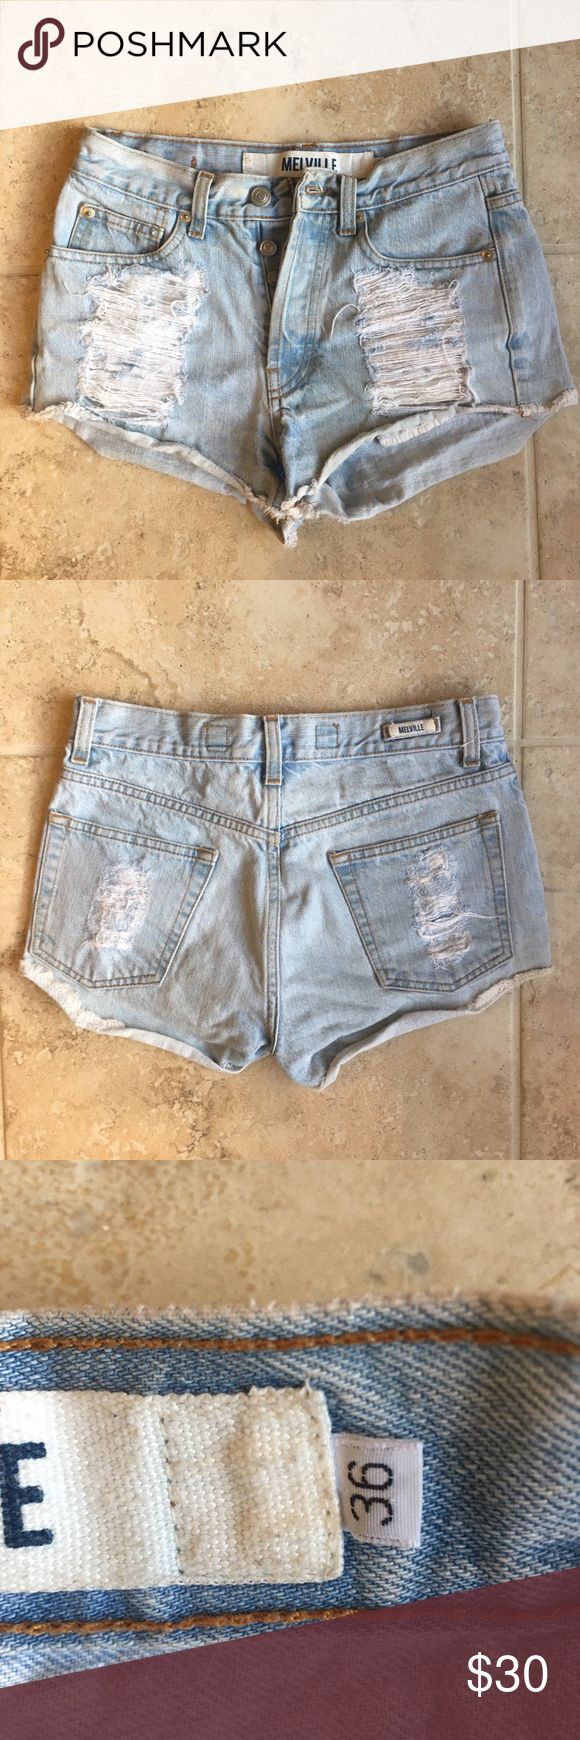 Brandy Melville Distressed Denim Shorts high waisted brandy melville shorts. in vguc. button fly. these were bought in europe so they are a eu size 36 which is a us 24. Brandy Melville Shorts Jean Shorts